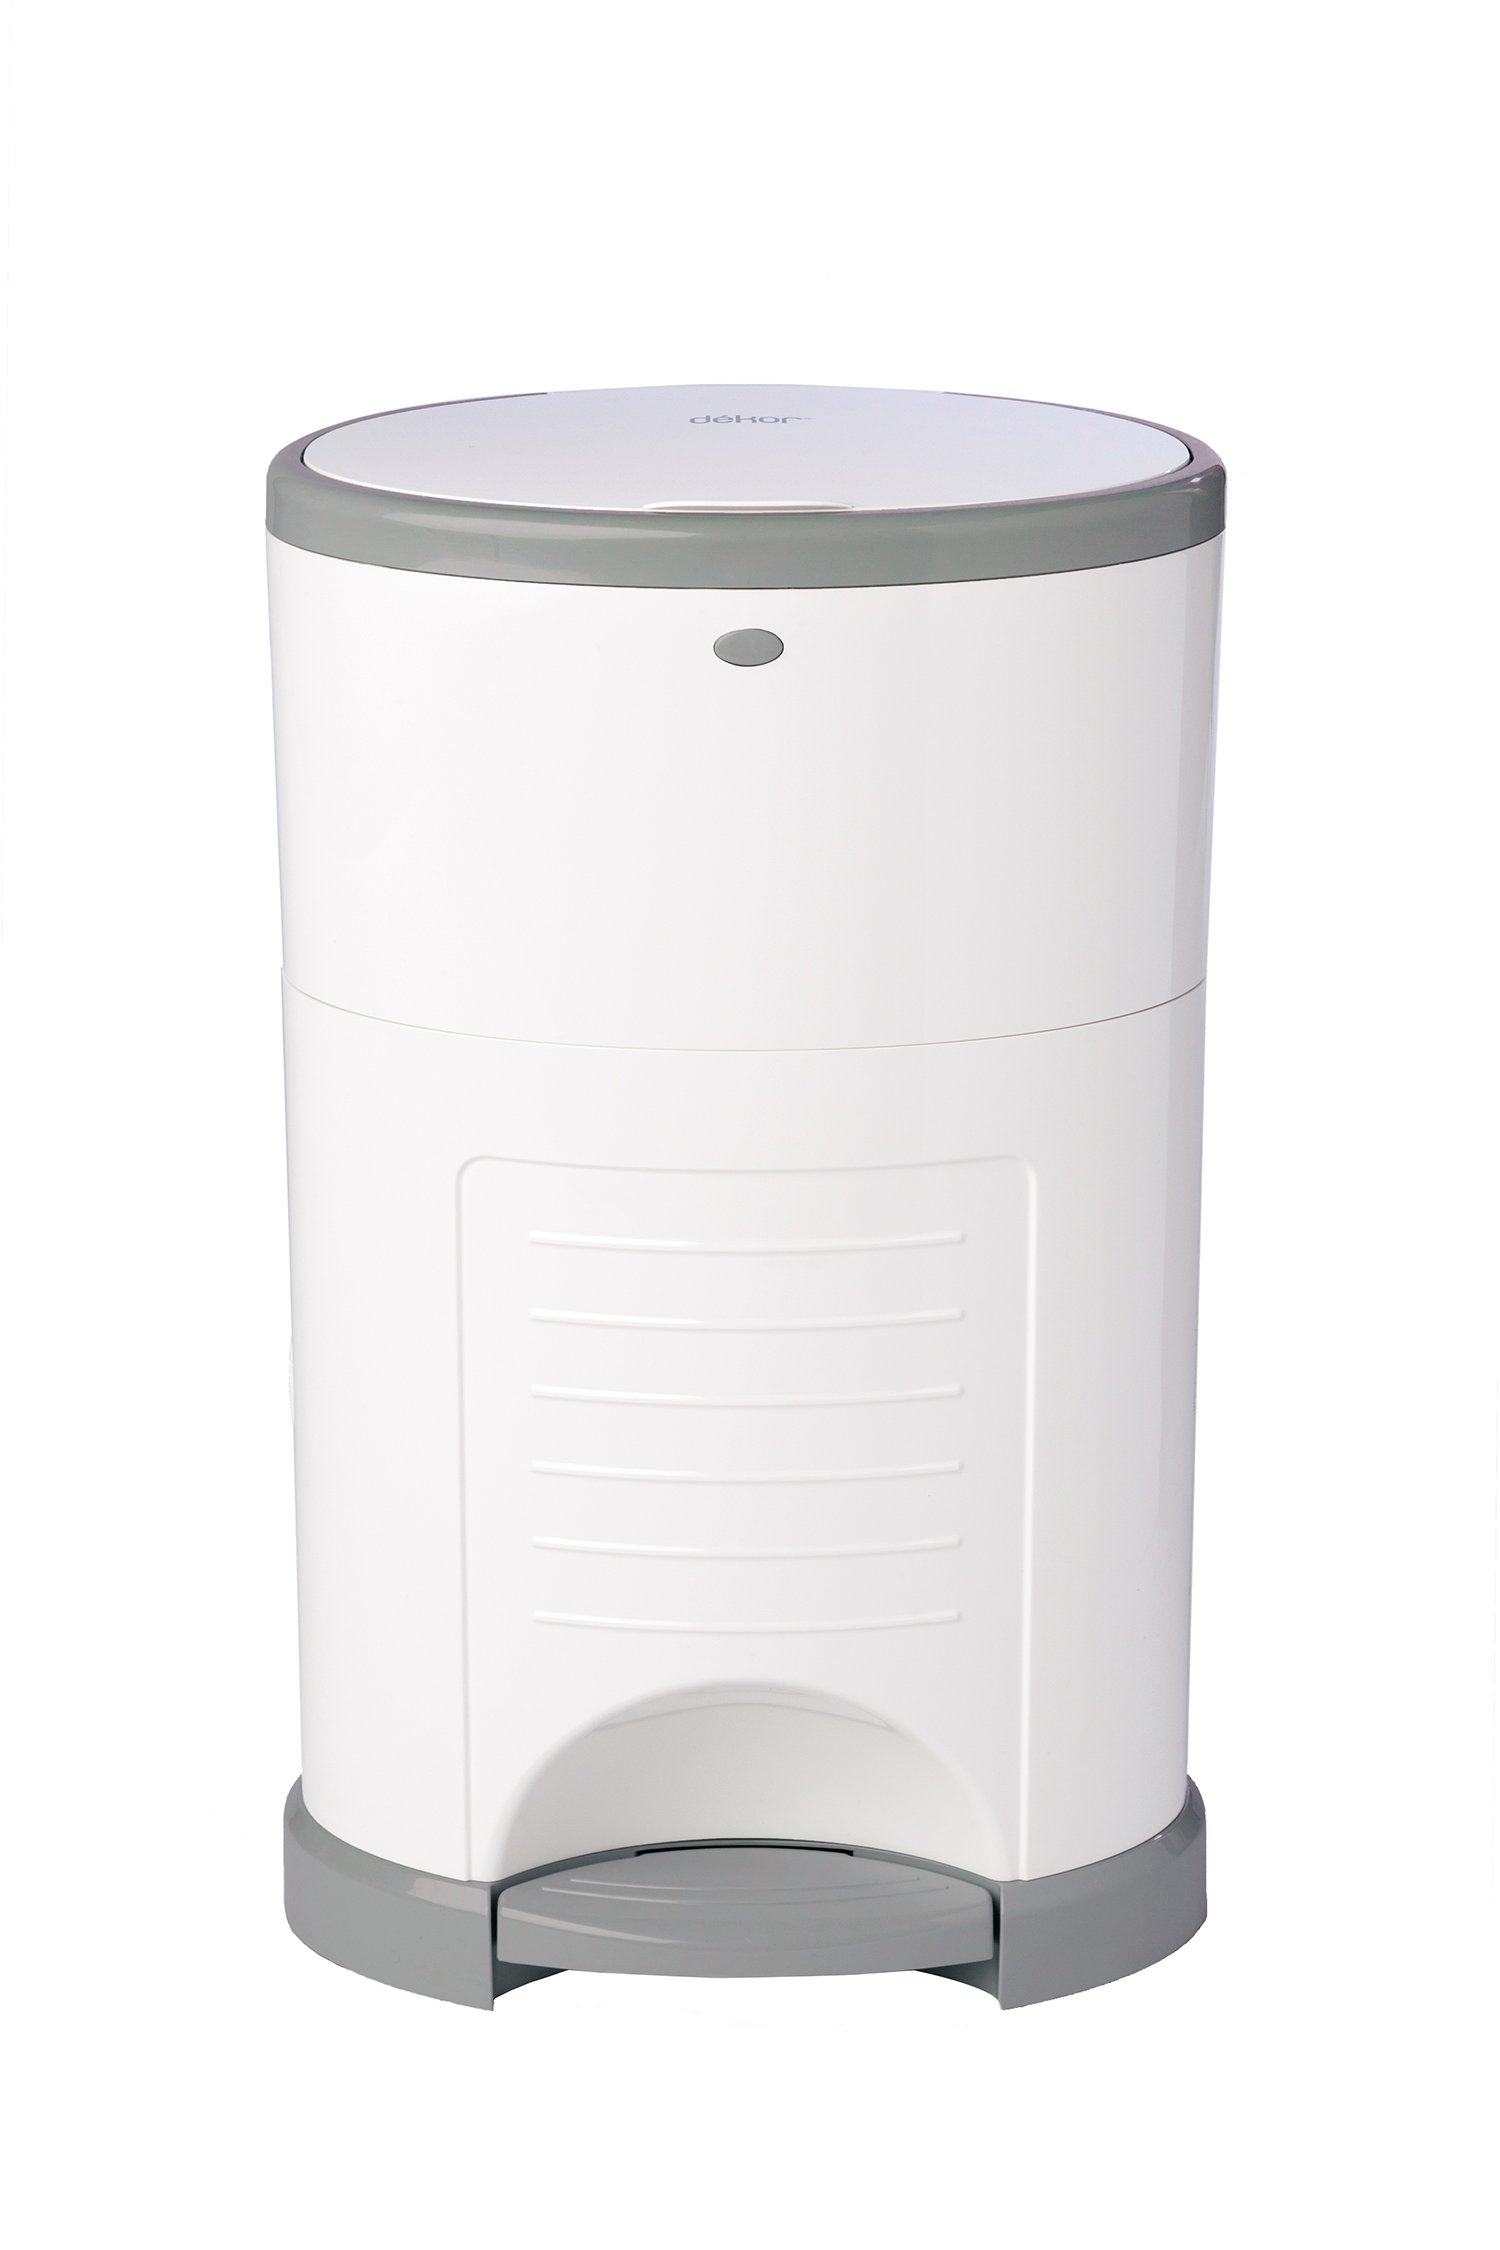 Dekor Classic Hands-Free Diaper Pail   White   Easiest to Use   Just Step – Drop – Done   Doesn't Absorb Odors   20 Second Bag Change   Most Economical Refill System